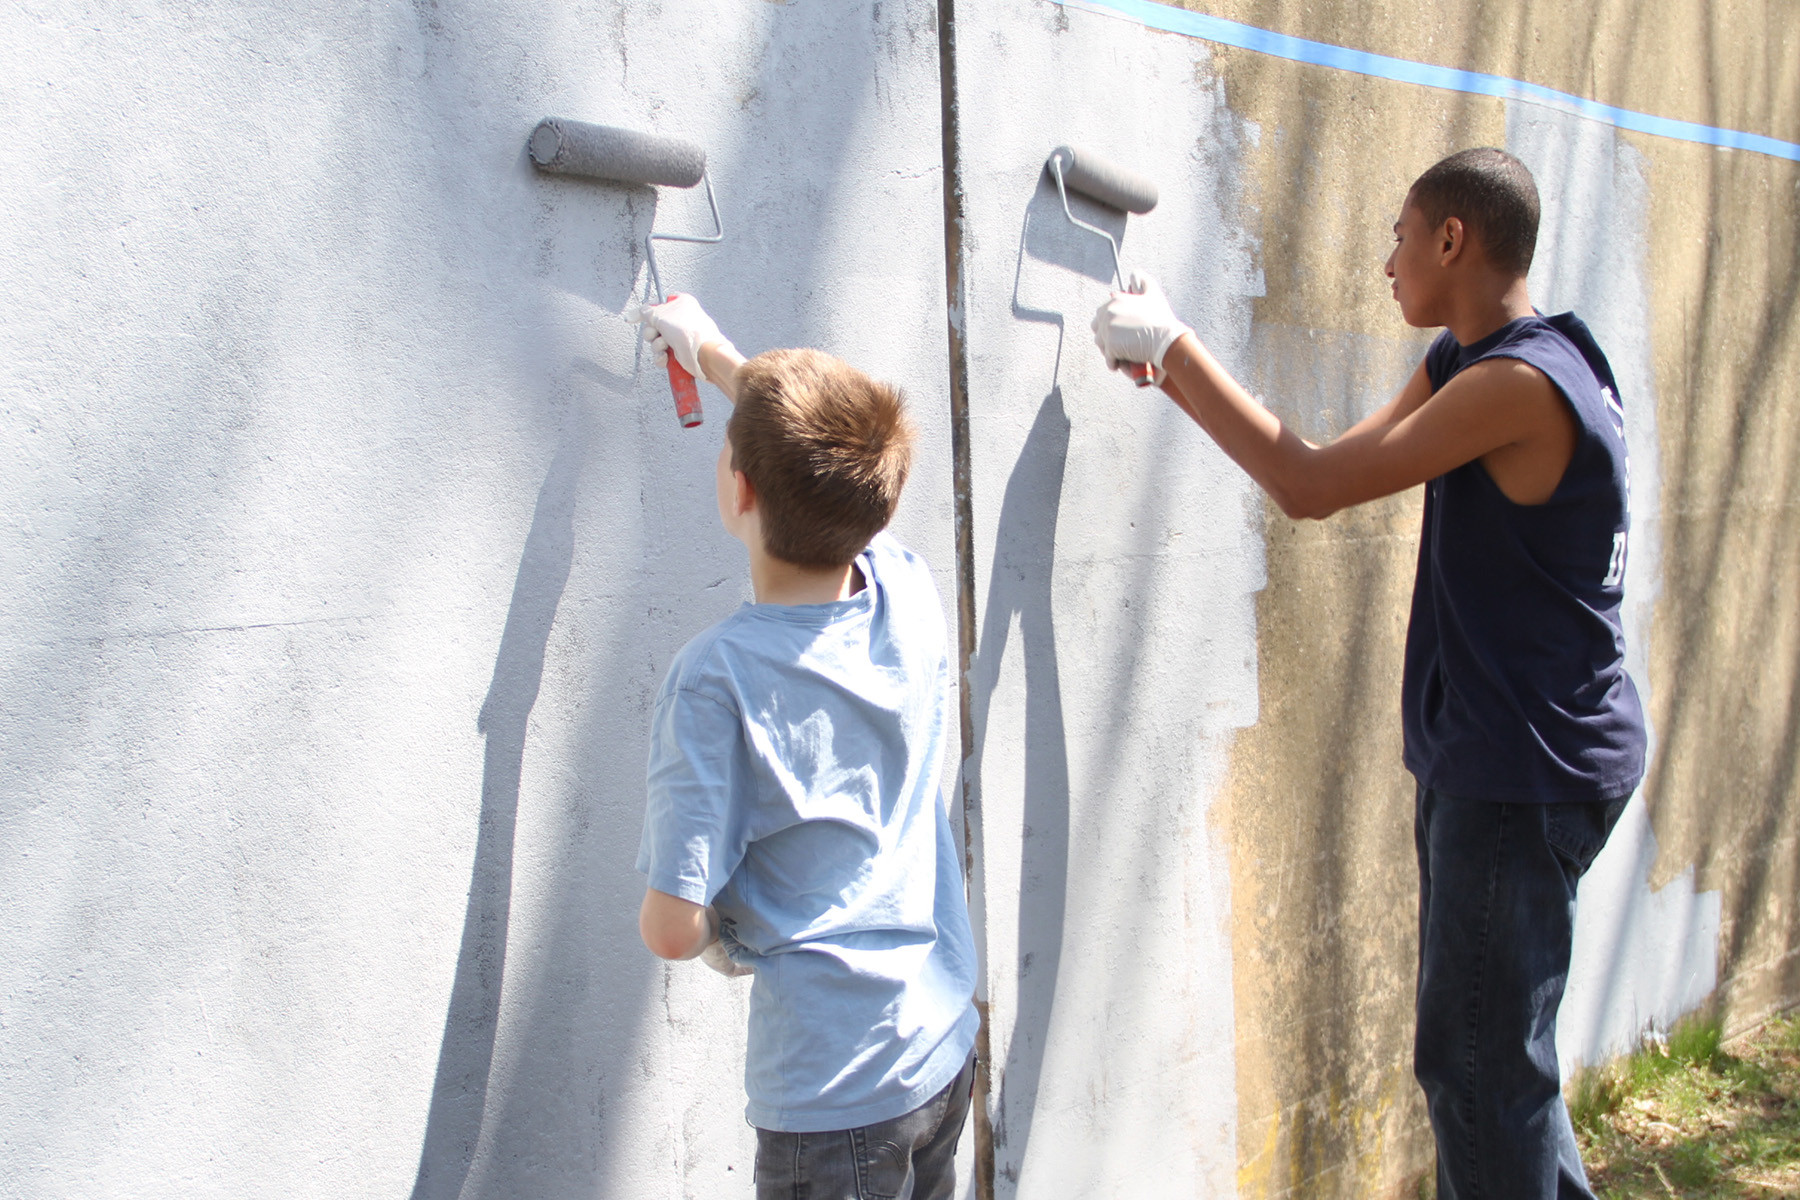 Volunteers from Envision Valley Stream painted the Long Island Rail Road trestle wall on April 28.